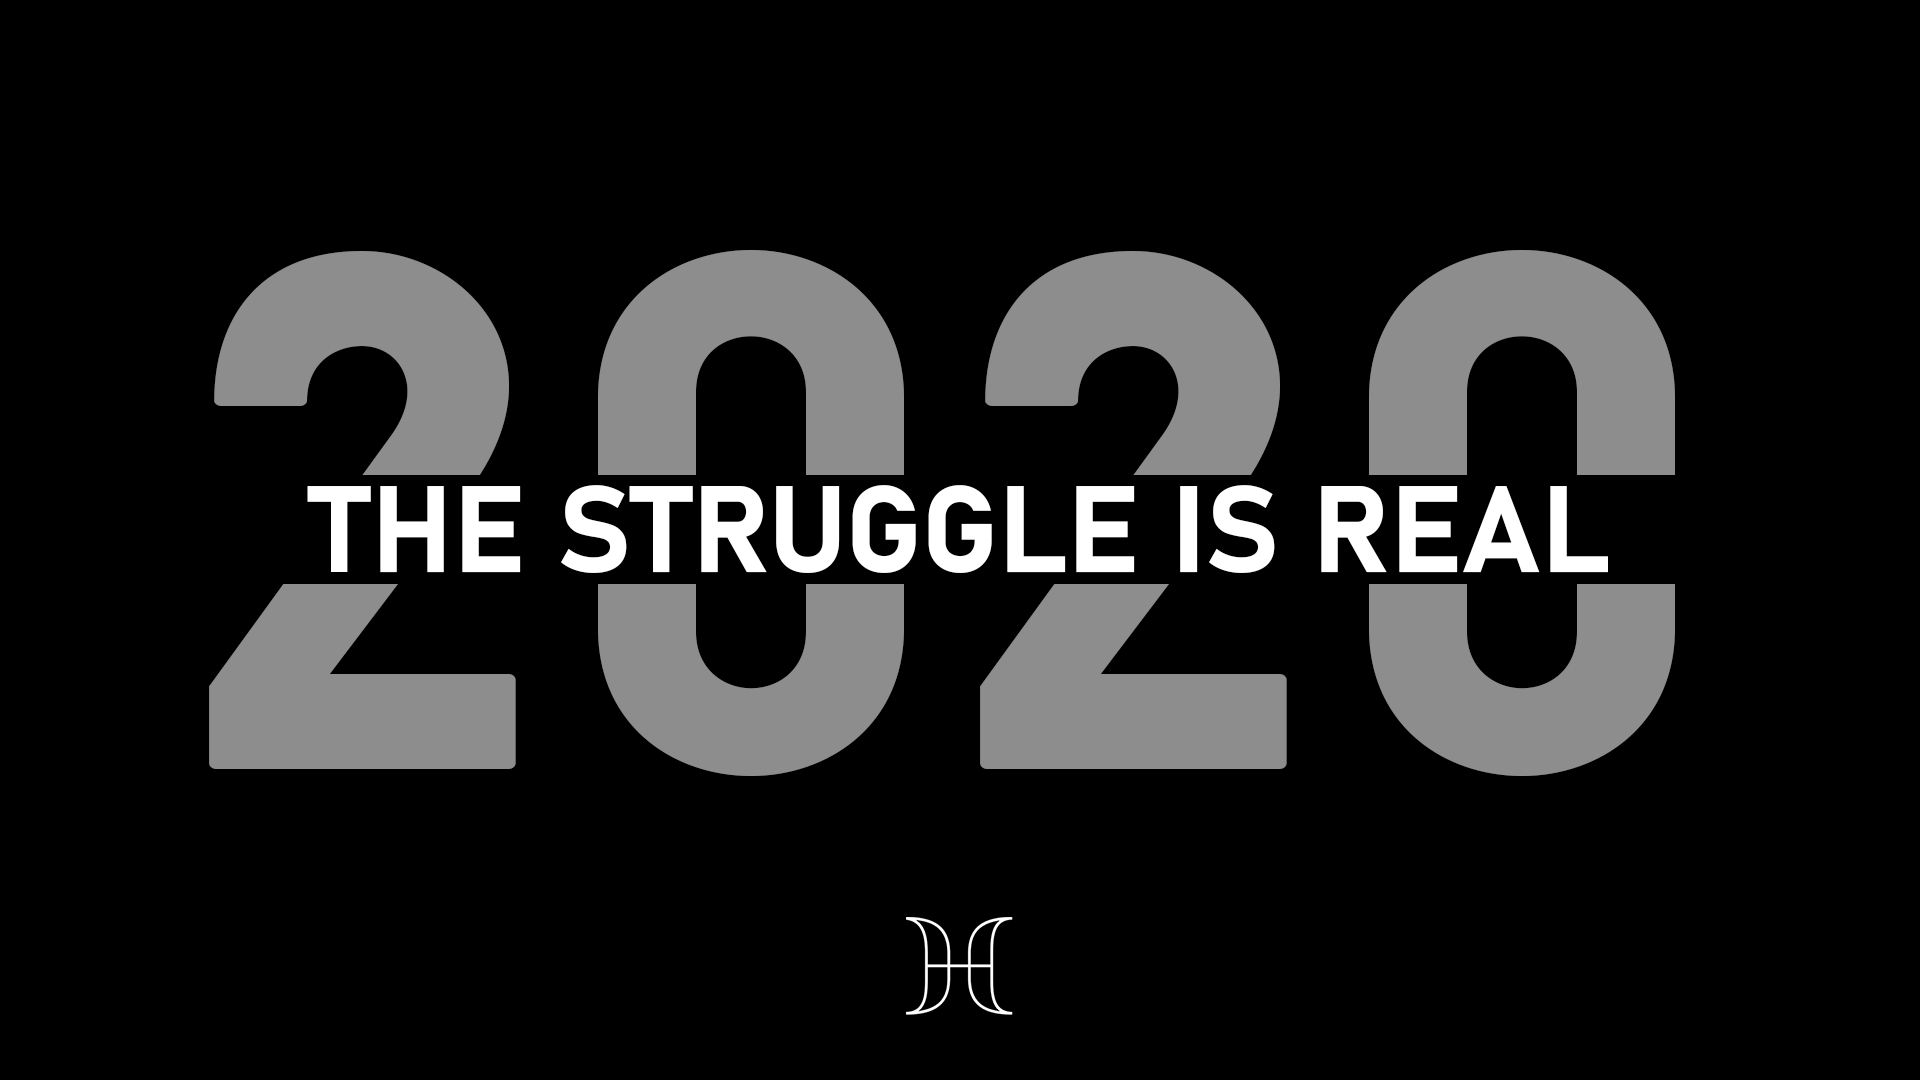 Current Series - 2020: The Struggle is Real